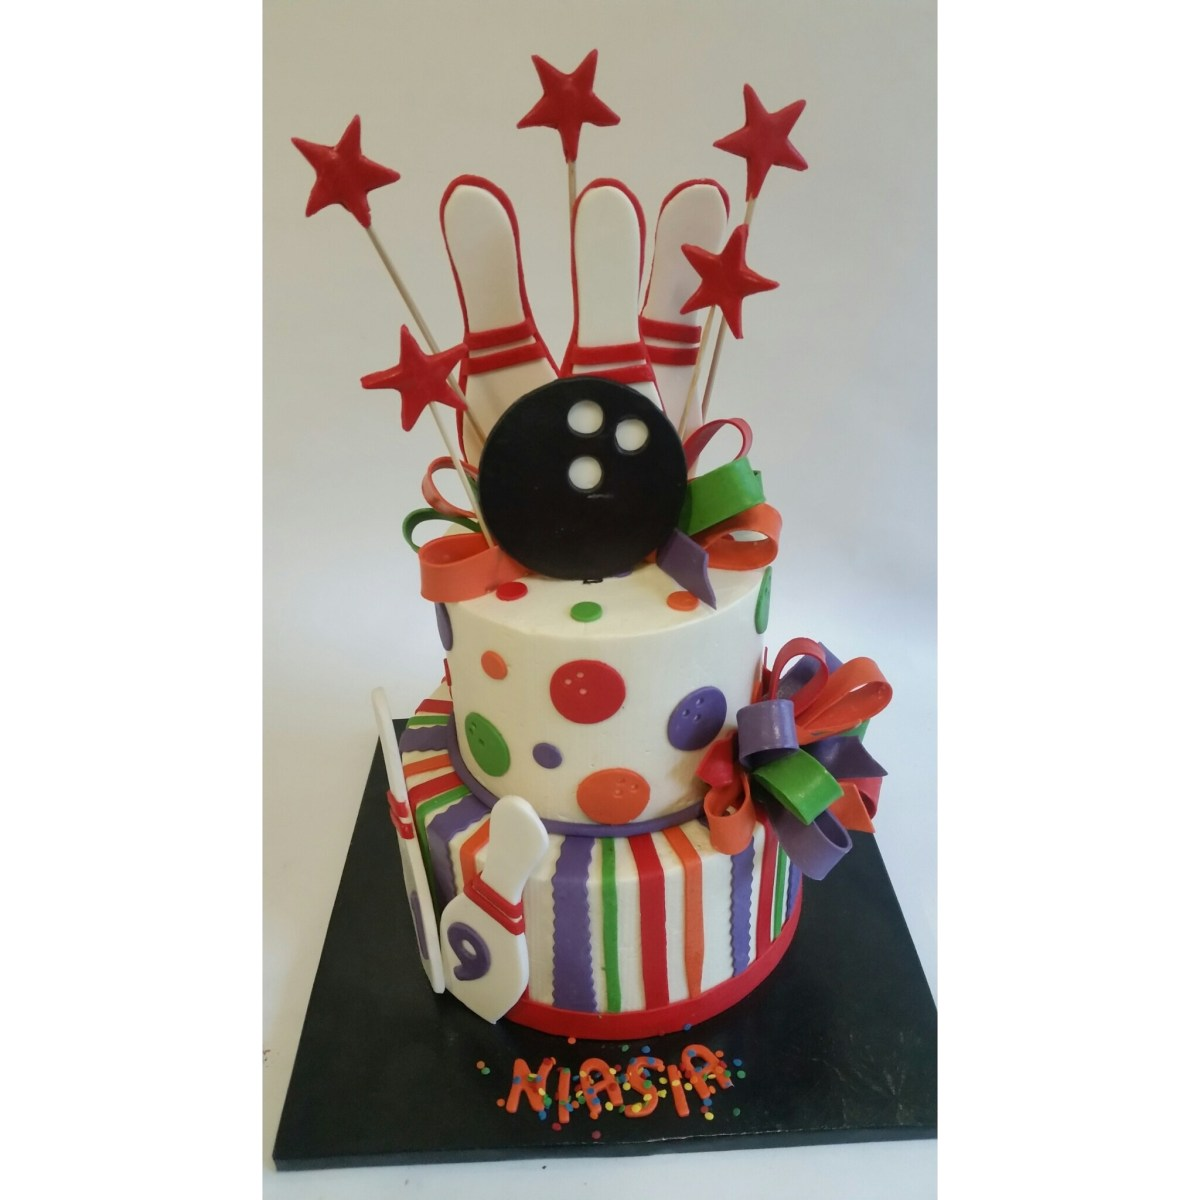 Surprising Specialty Birthday Cakes Custom Birthday Cakes Laurie Clarke Cakes Funny Birthday Cards Online Aboleapandamsfinfo